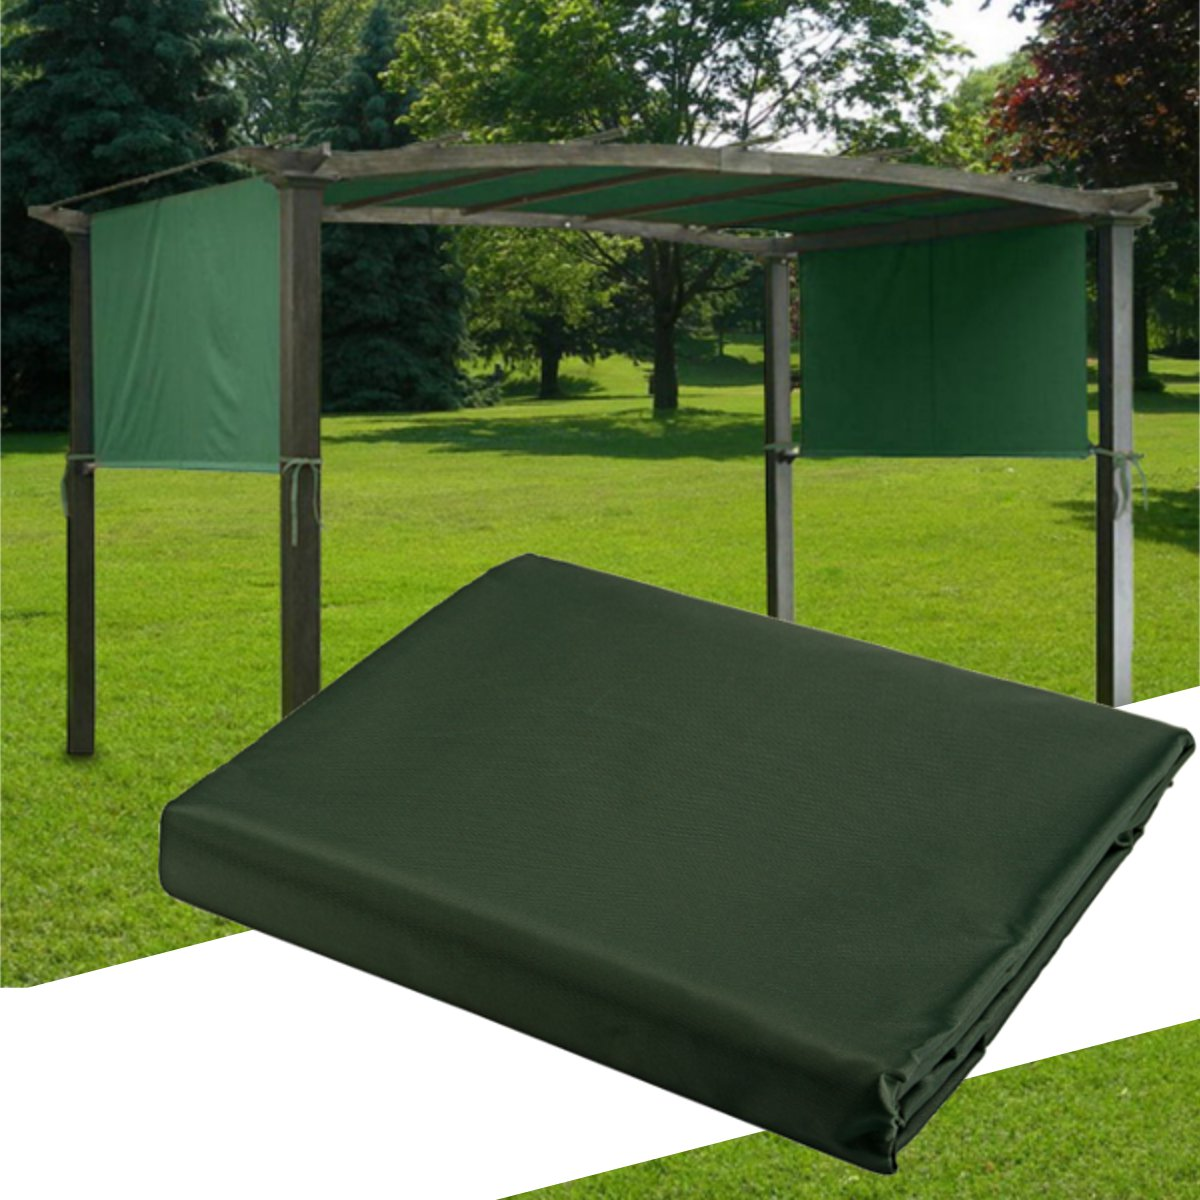 5.2x1.2M Sun Shade Pergola Canopy Outdoor Camping Tent Sunshade Cover Garden Patio Shelter